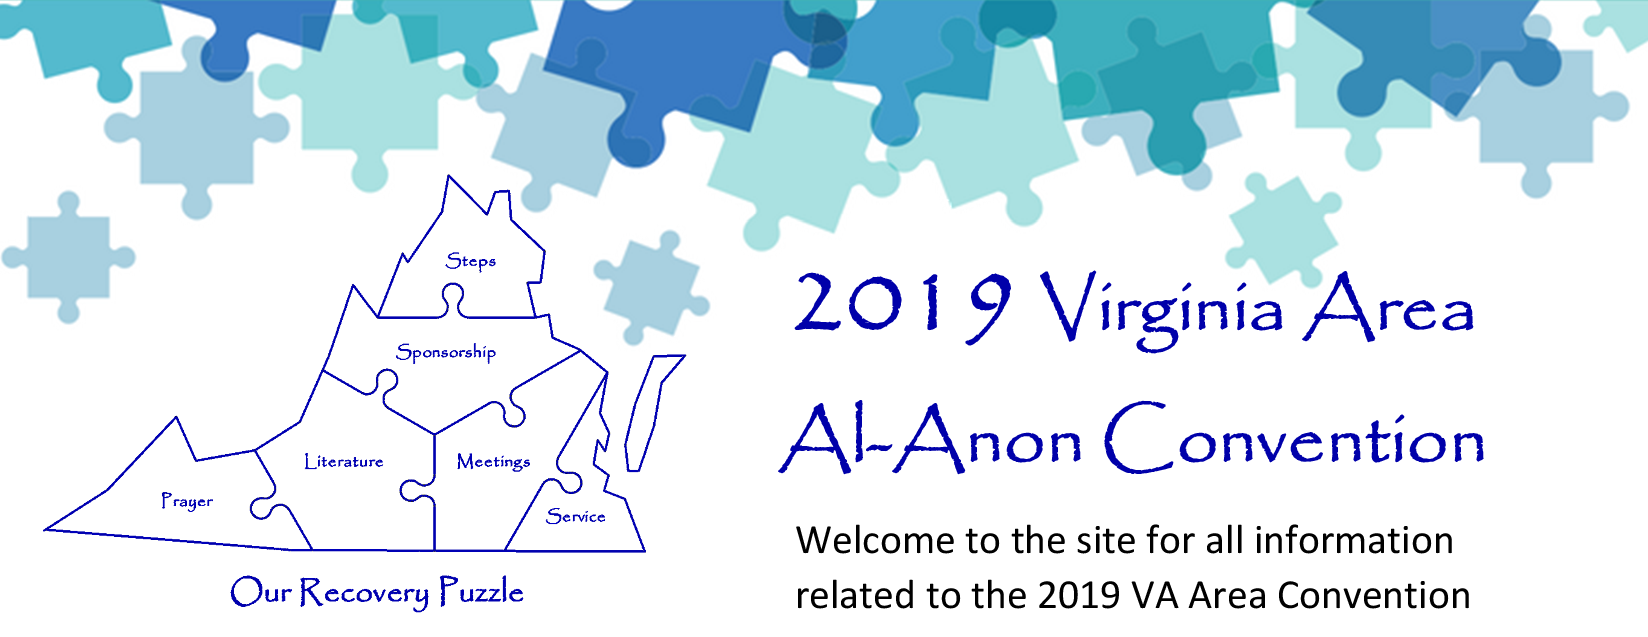 Welcome to the site for all information related to the 2019 VA Area Al-Anon